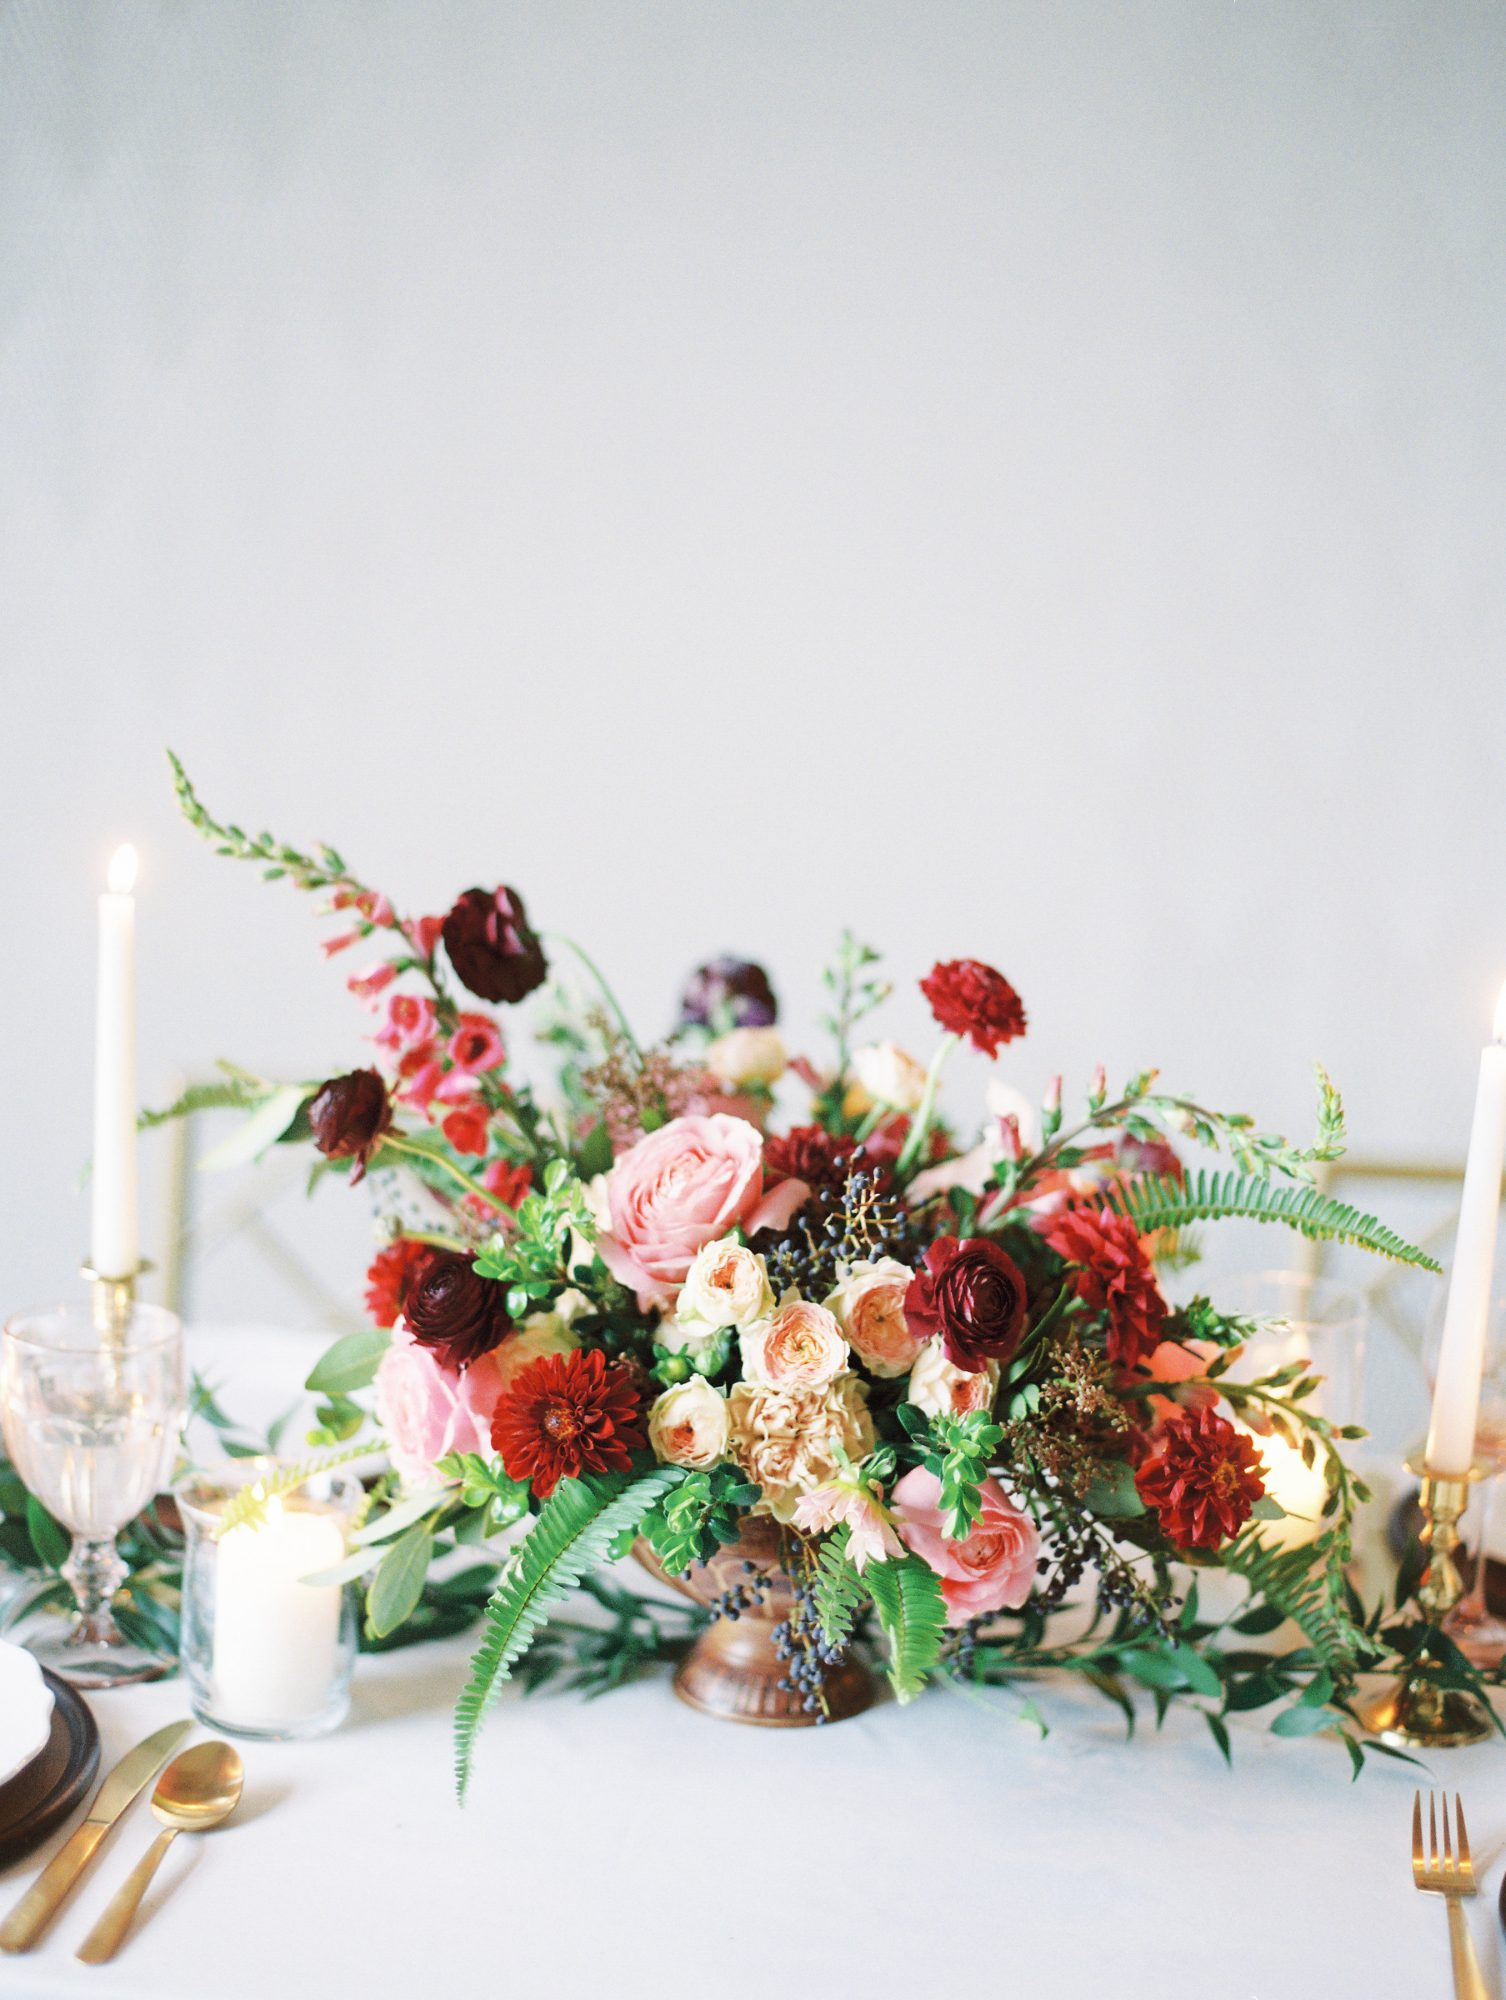 Burgundy-Hued Fall Centerpiece with Fresh Berries